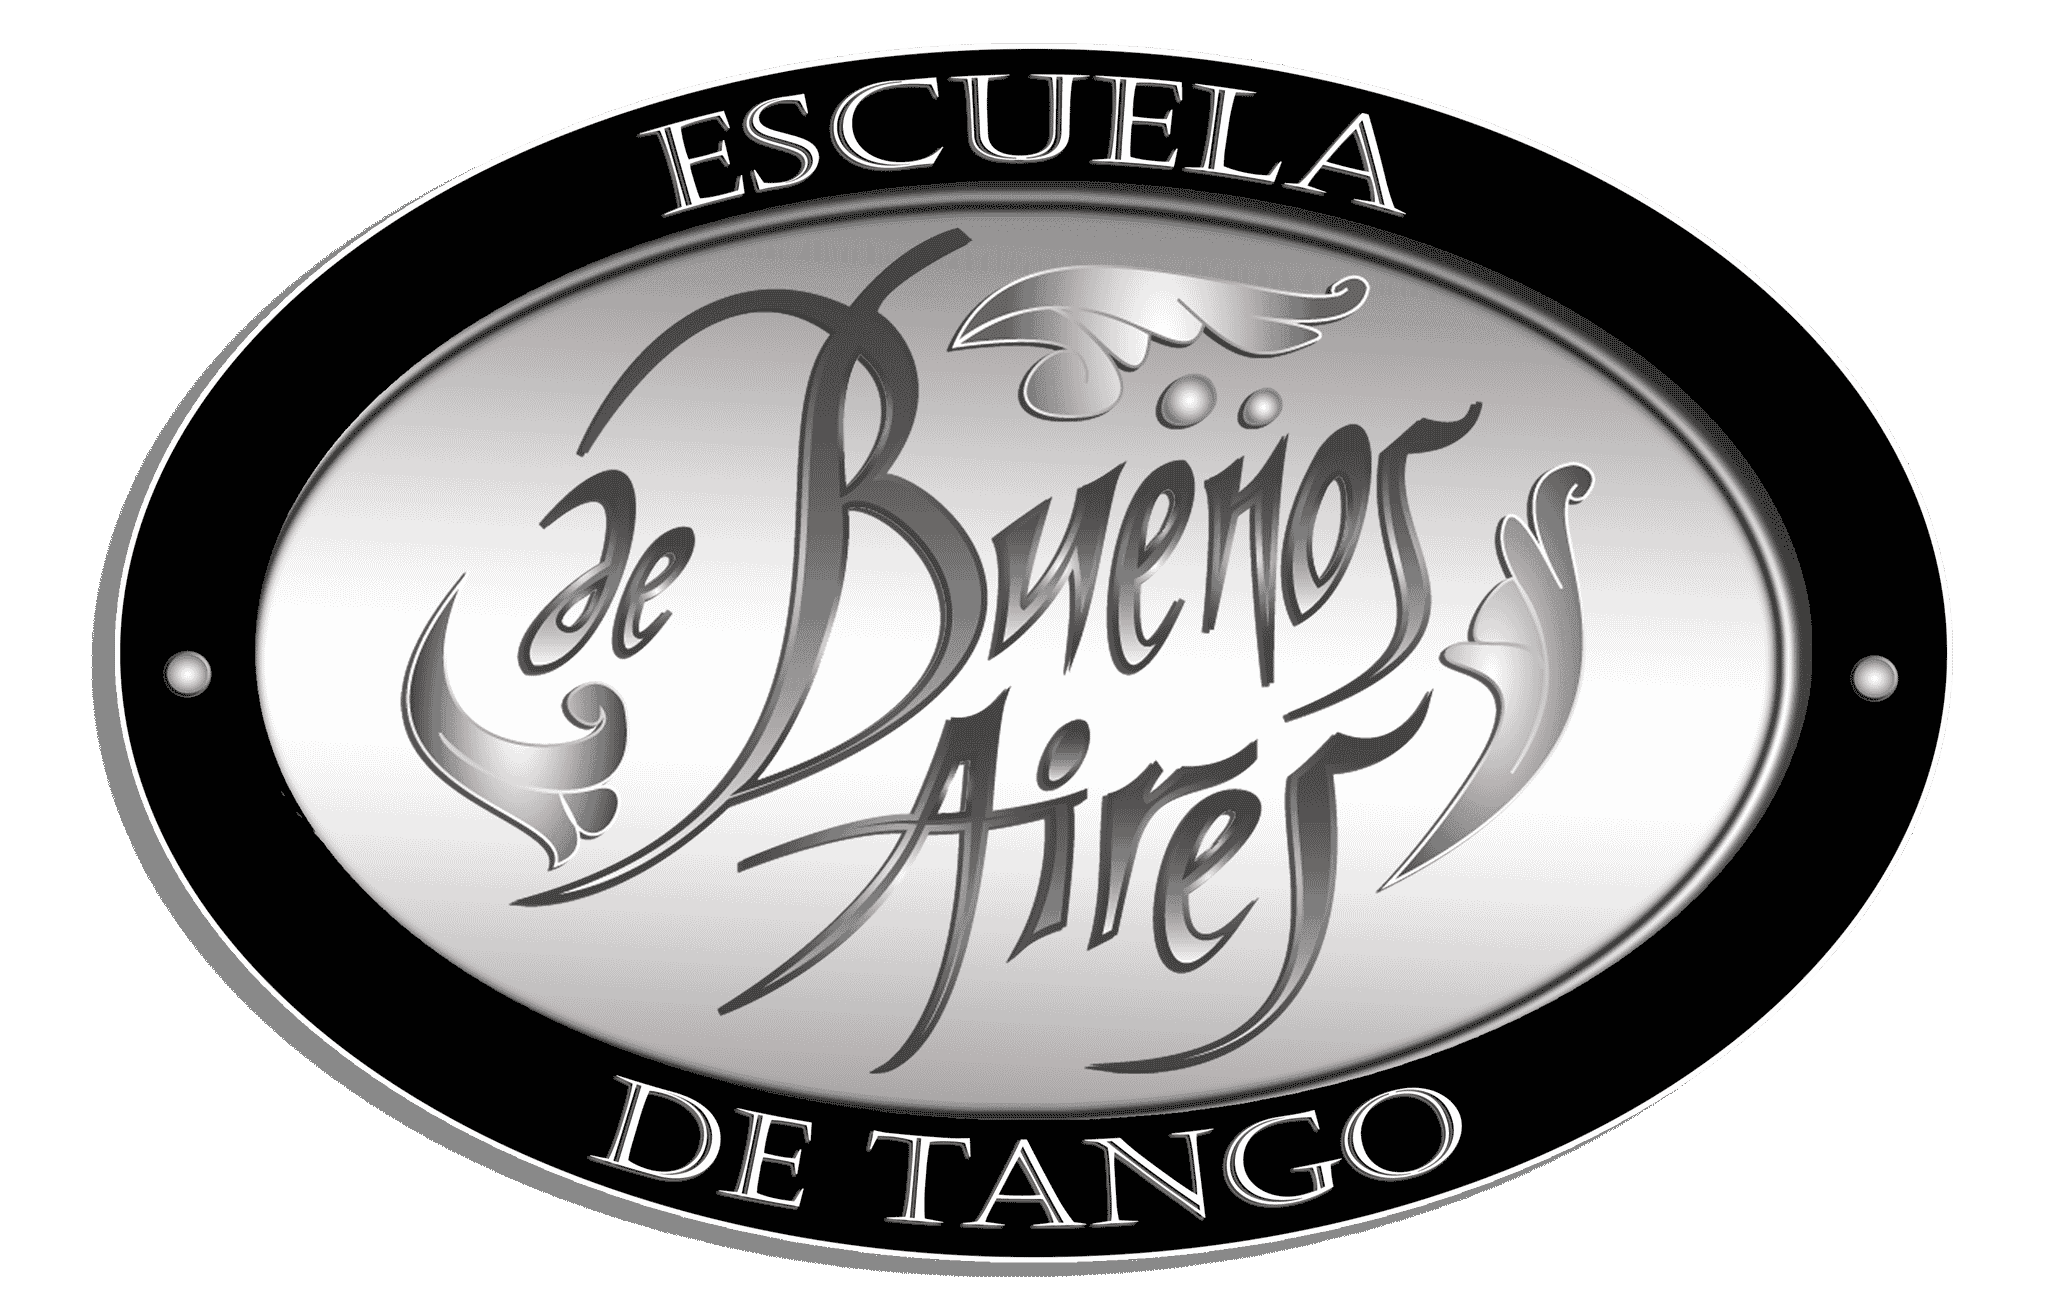 Escuela de Tango de Buenos Aires Headquarters. Argentine Tango dance classes for beginners, intermediate and advanced level. Argentine Tango dance Private lessons. one to one Argentine dance lessons. Argentine Tango dance lessons for couples. Argentine Tango Milongas and workshops. San Francisco, Lafayette, Walnut Creek, Orinda, Danville, San Jose, Cupertino, Campbell, Mountain View, Sunnyvale, Milpitas. With Marcelo Solis at Escuela de Tango de Buenos Aires.